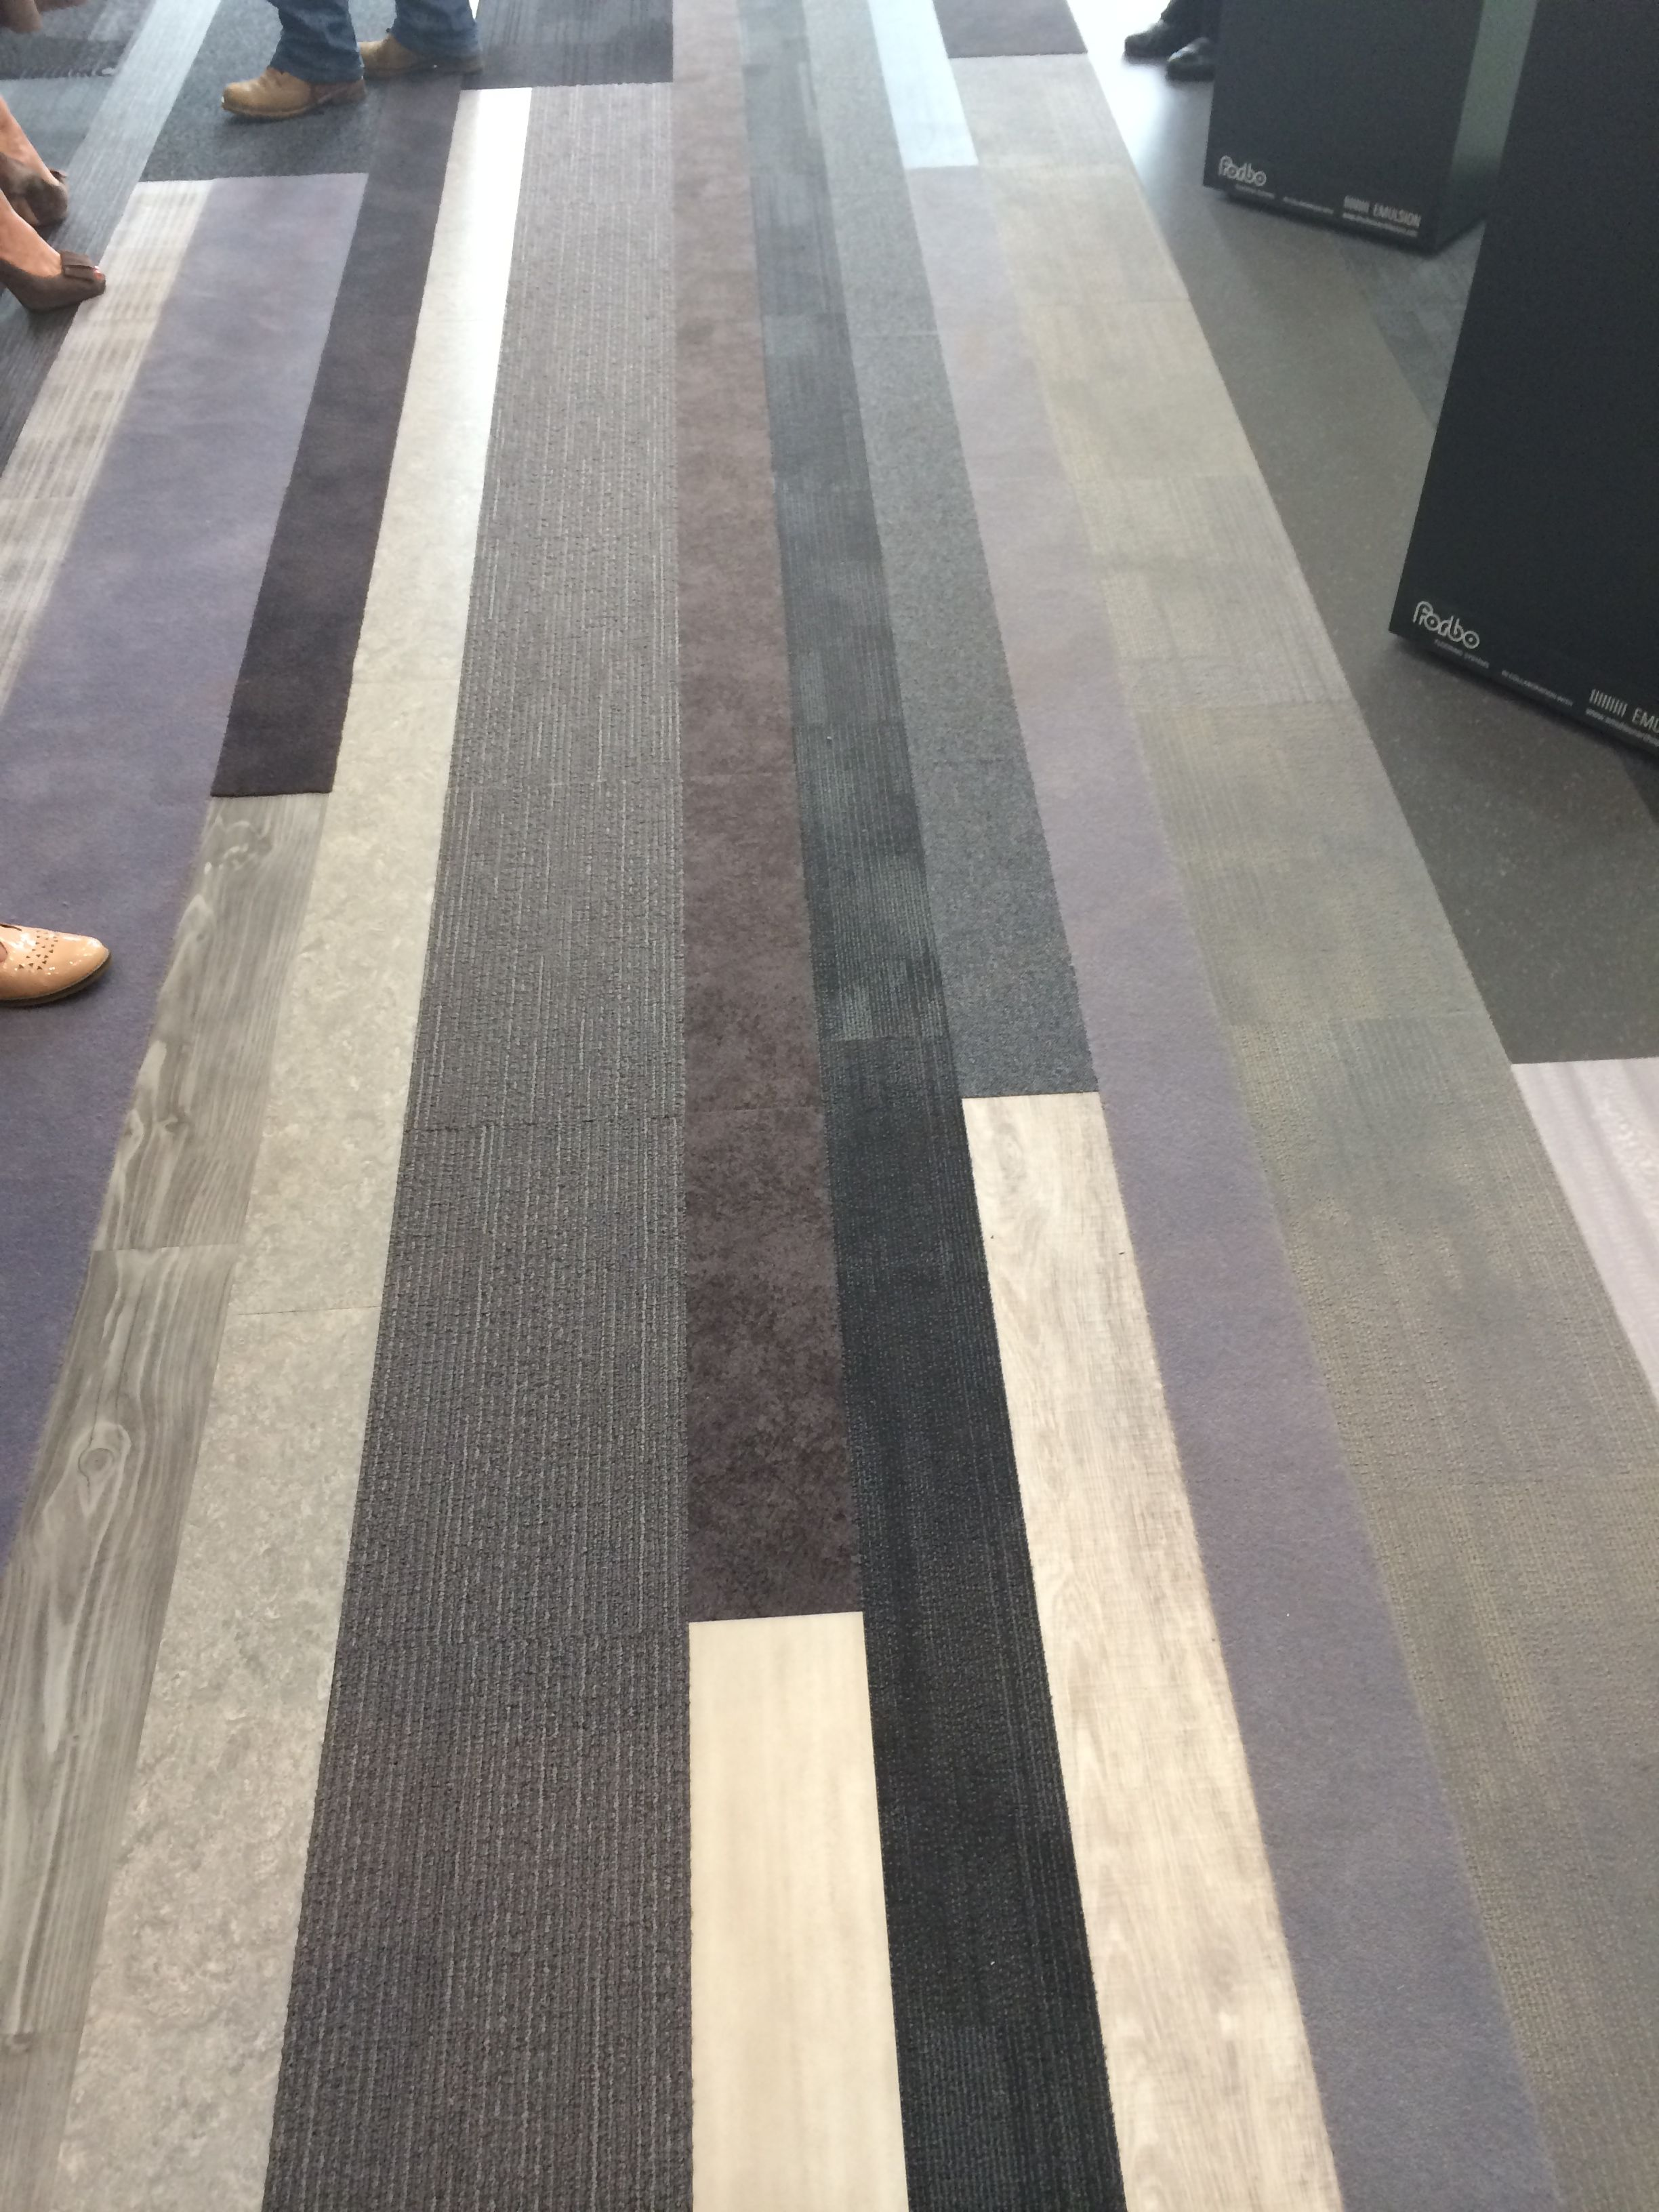 Vinyl planks and carpet tiles installed together to create visual vinyl planks and carpet tiles installed together to create visual sensation doublecrazyfo Choice Image